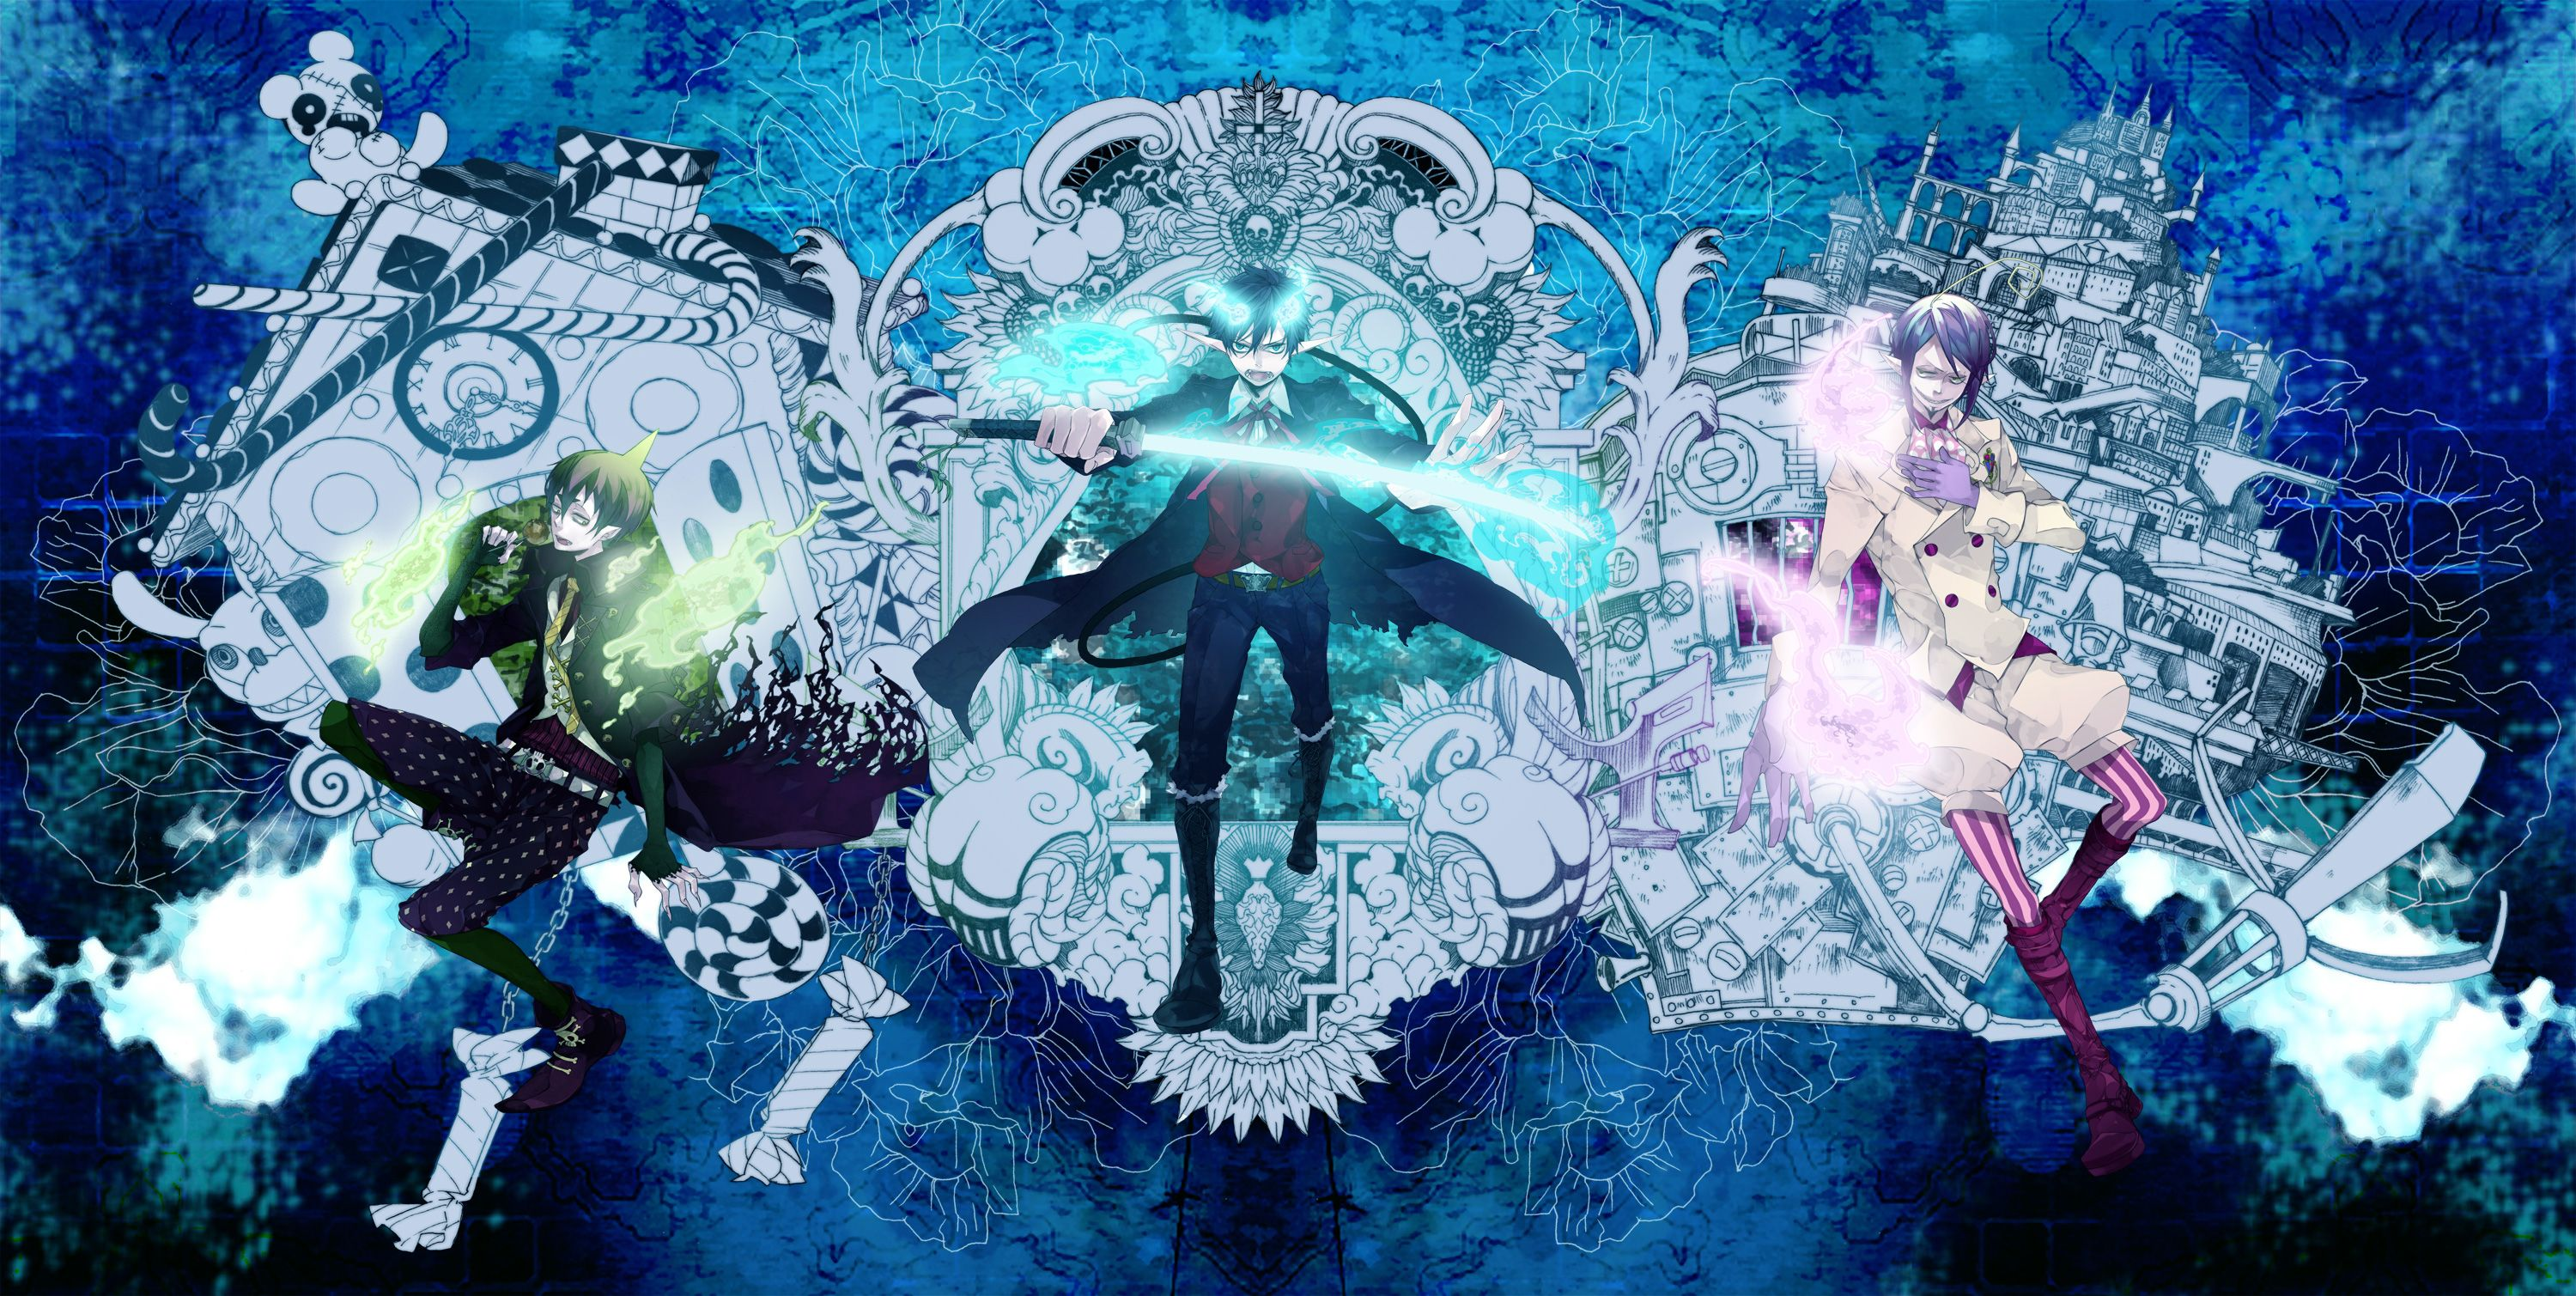 Blue Exorcist Wallpapers Top Free Blue Exorcist Backgrounds